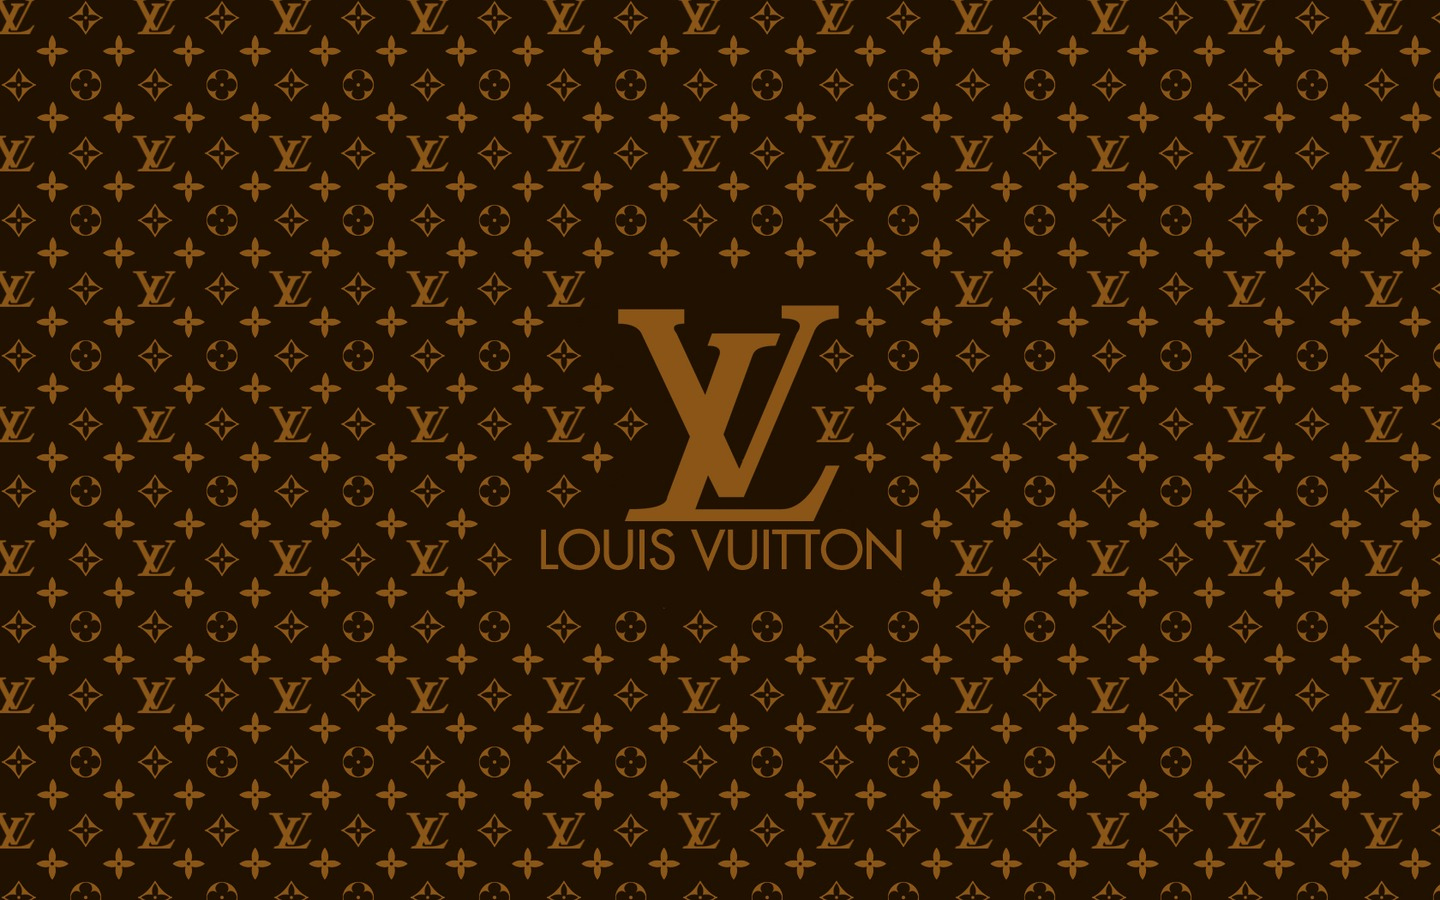 Louis Vuitton Free Printable Papers Oh My Fiesta For